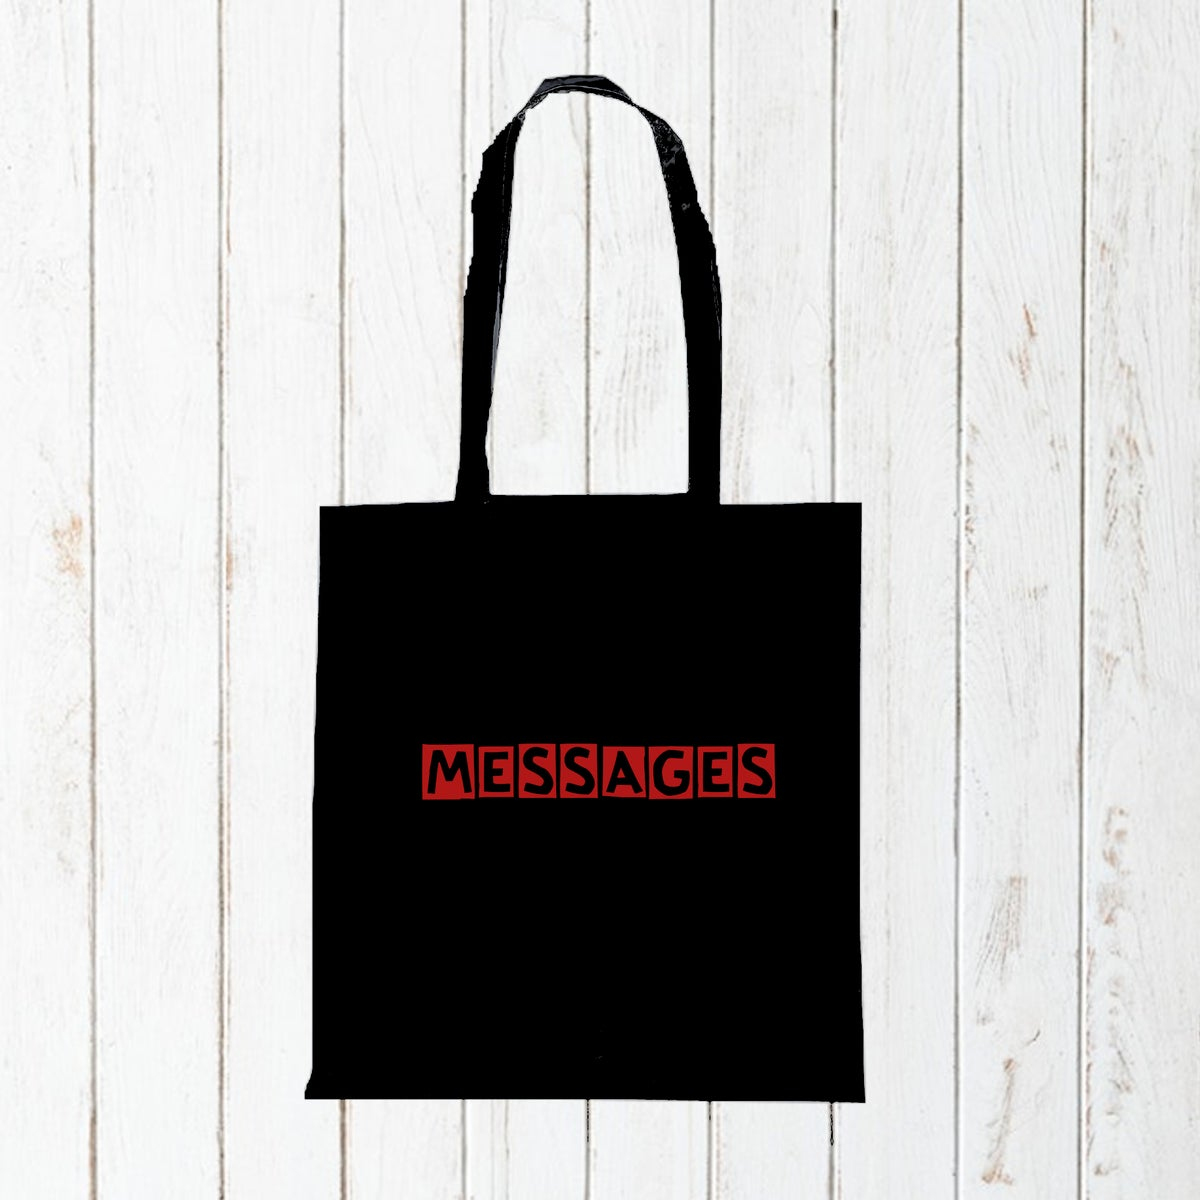 Messages - Cotton Tote Bag